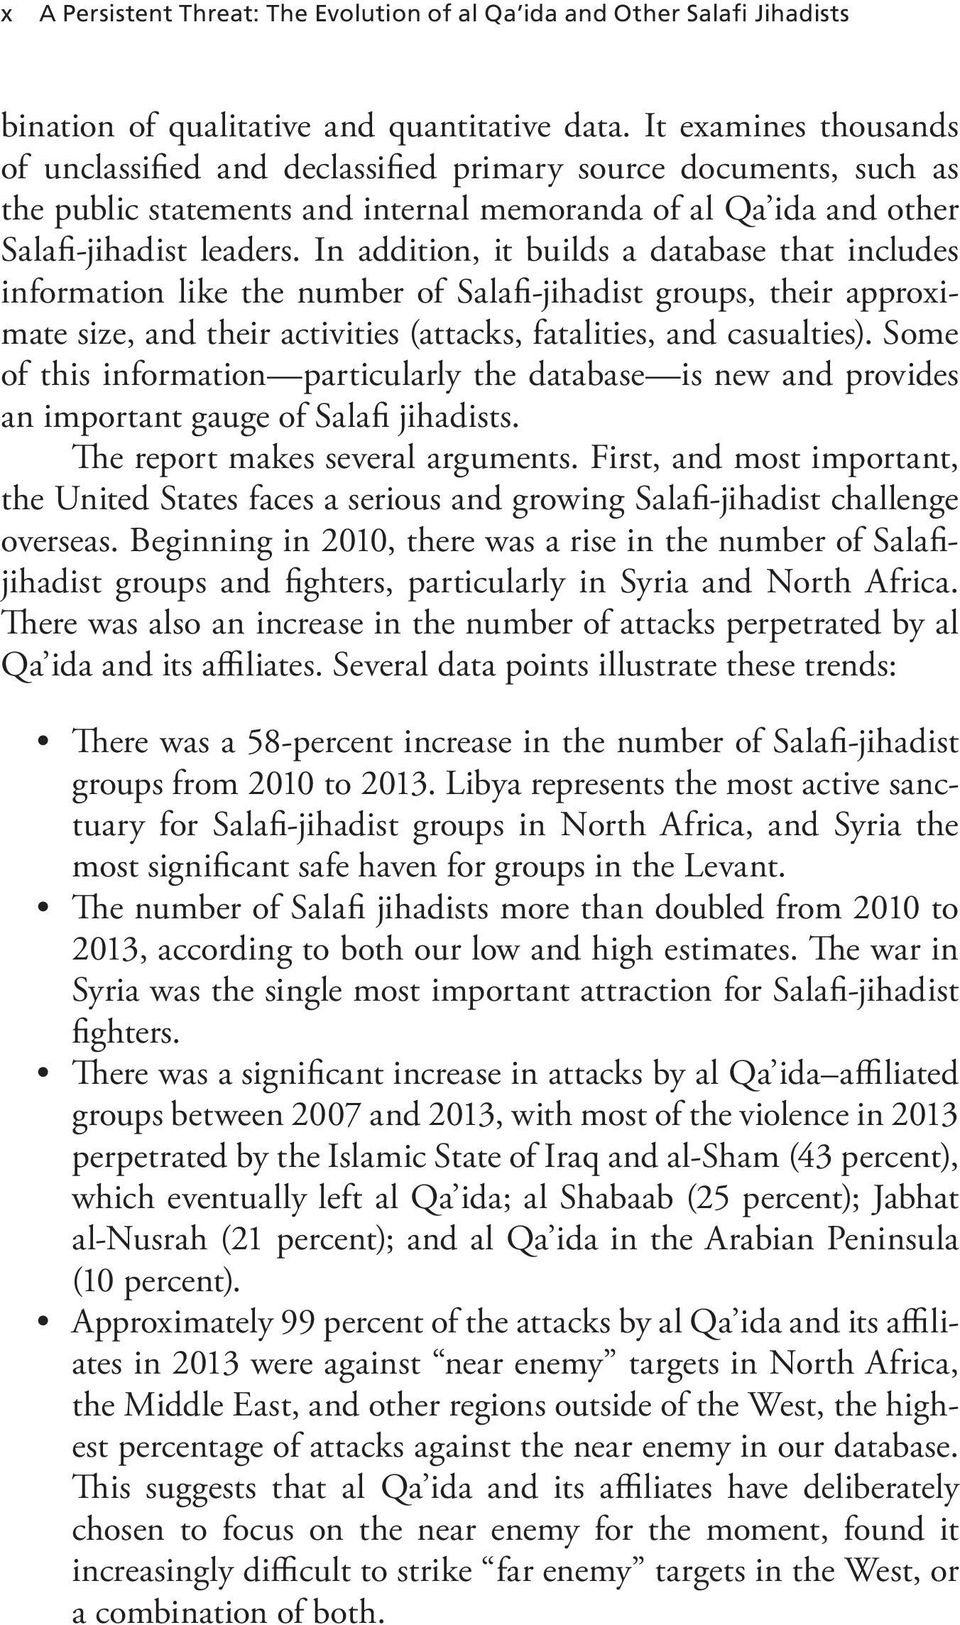 In addition, it builds a database that includes information like the number of Salafi-jihadist groups, their approximate size, and their activities (attacks, fatalities, and casualties).